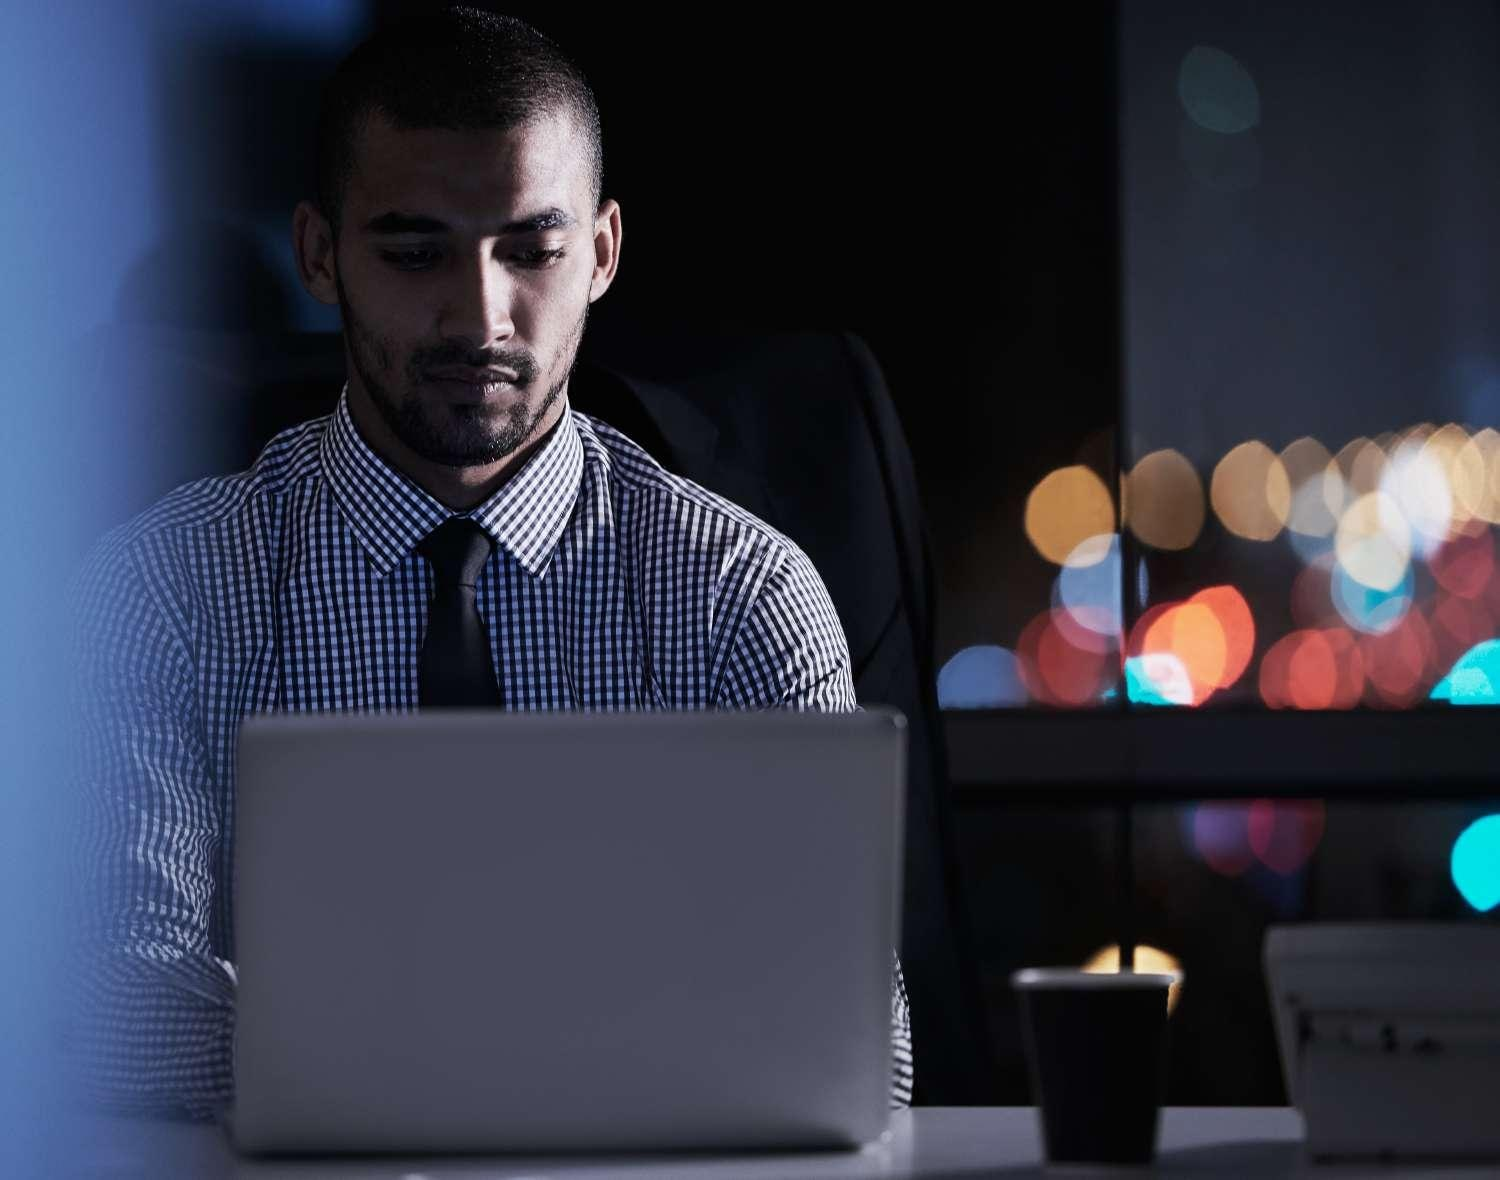 Man with tie on a laptop at night